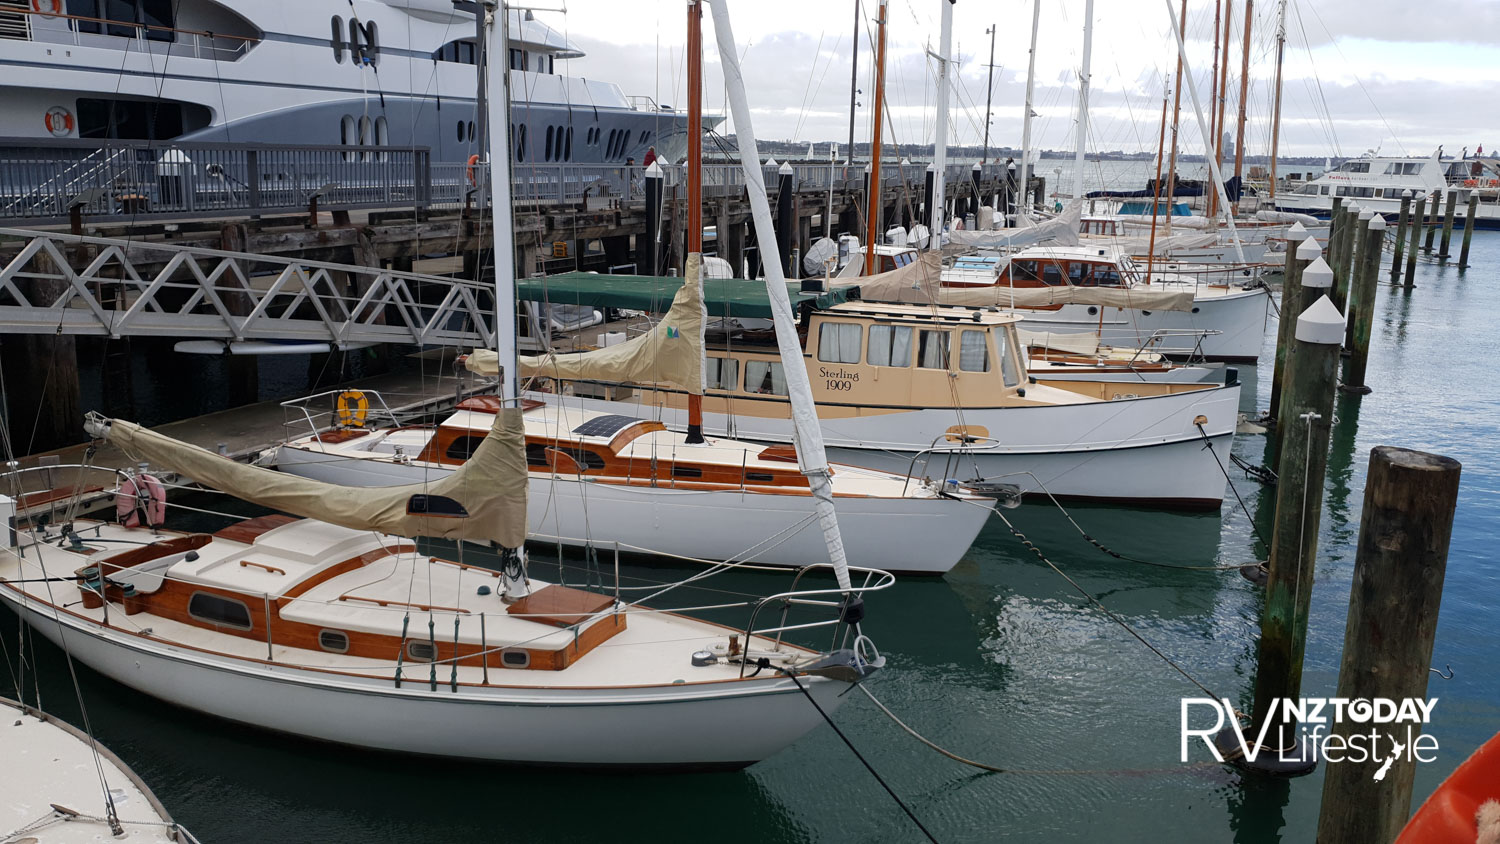 Silo marina in Auckland's Viaduct, always interesting to see what boats are moored in here